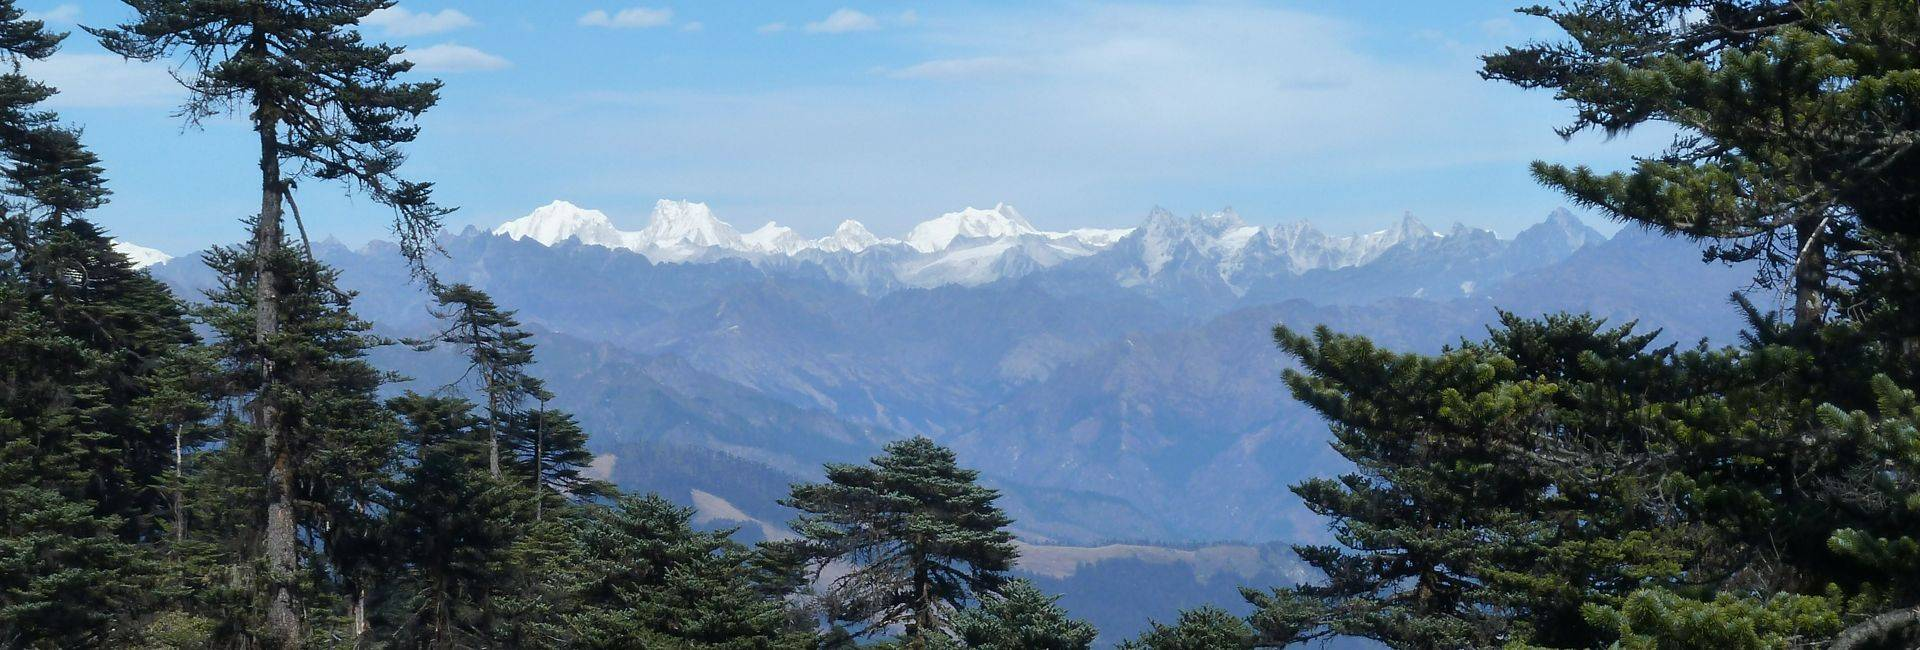 Kitiphu Ridge trek in Bhutan